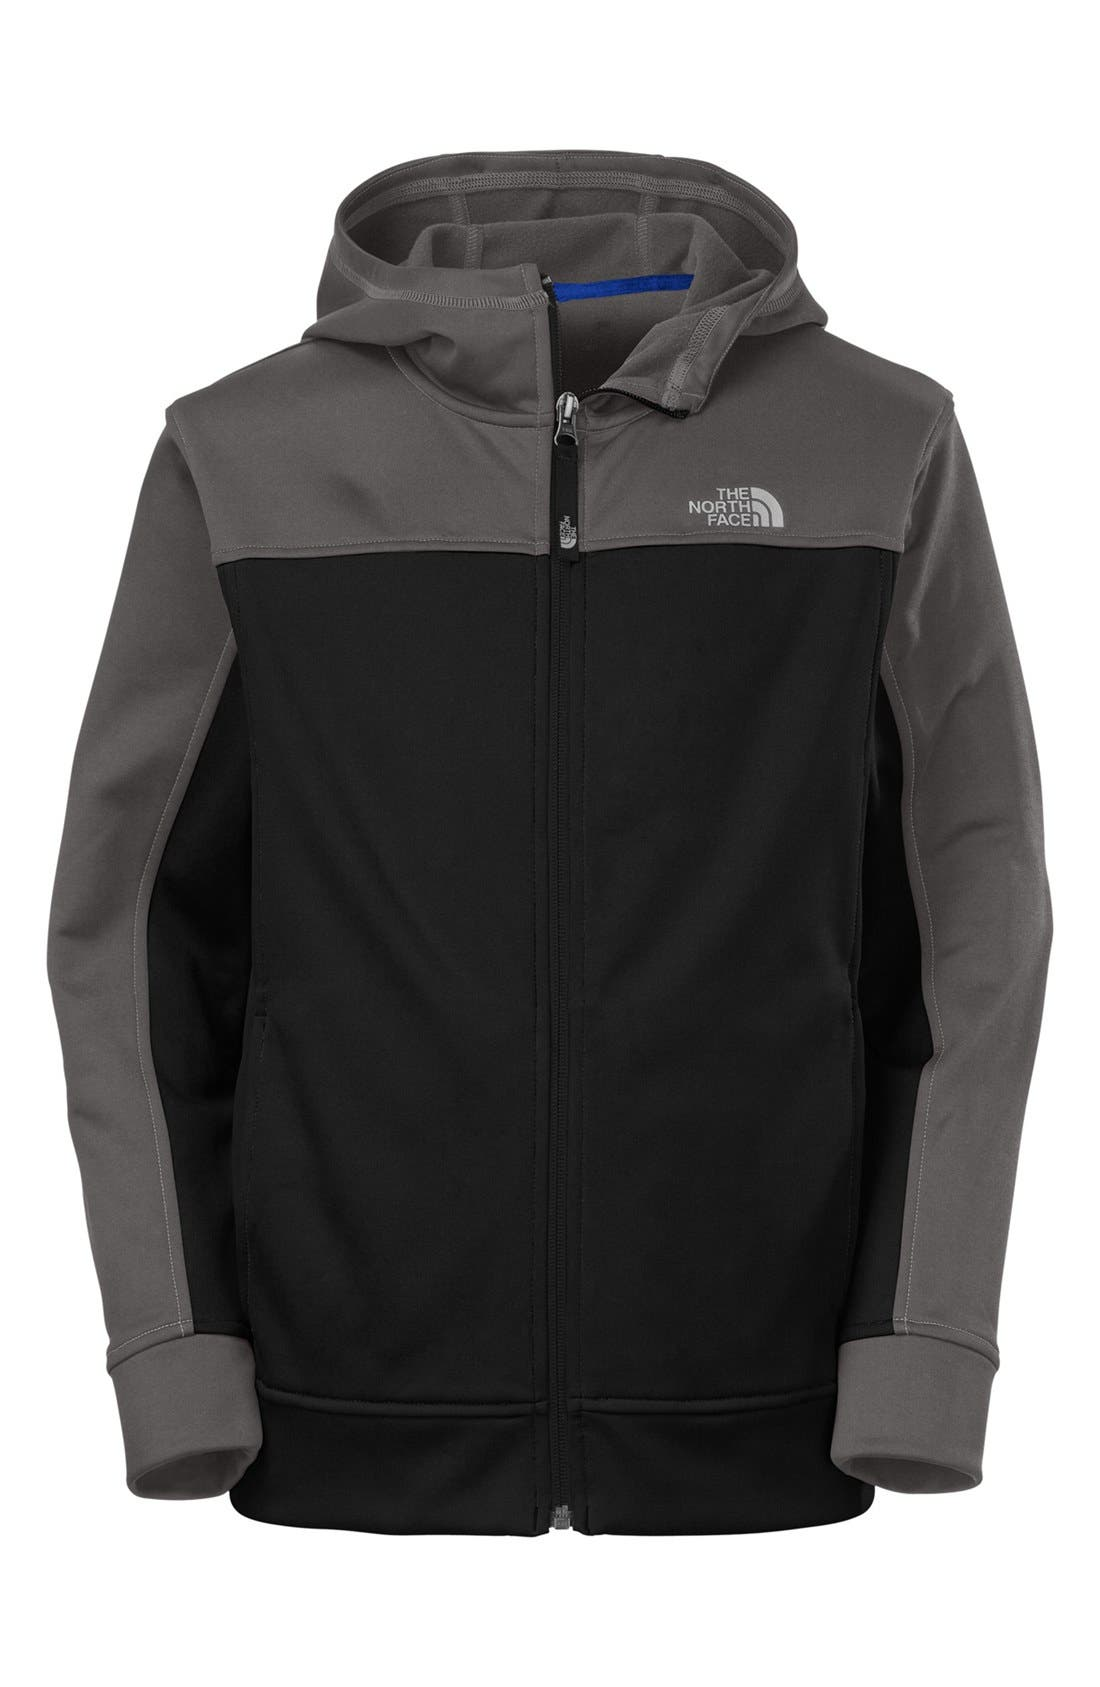 Main Image - The North Face 'Surgent' Full Zip Hoodie with Reflective Detailing (Big Boys)